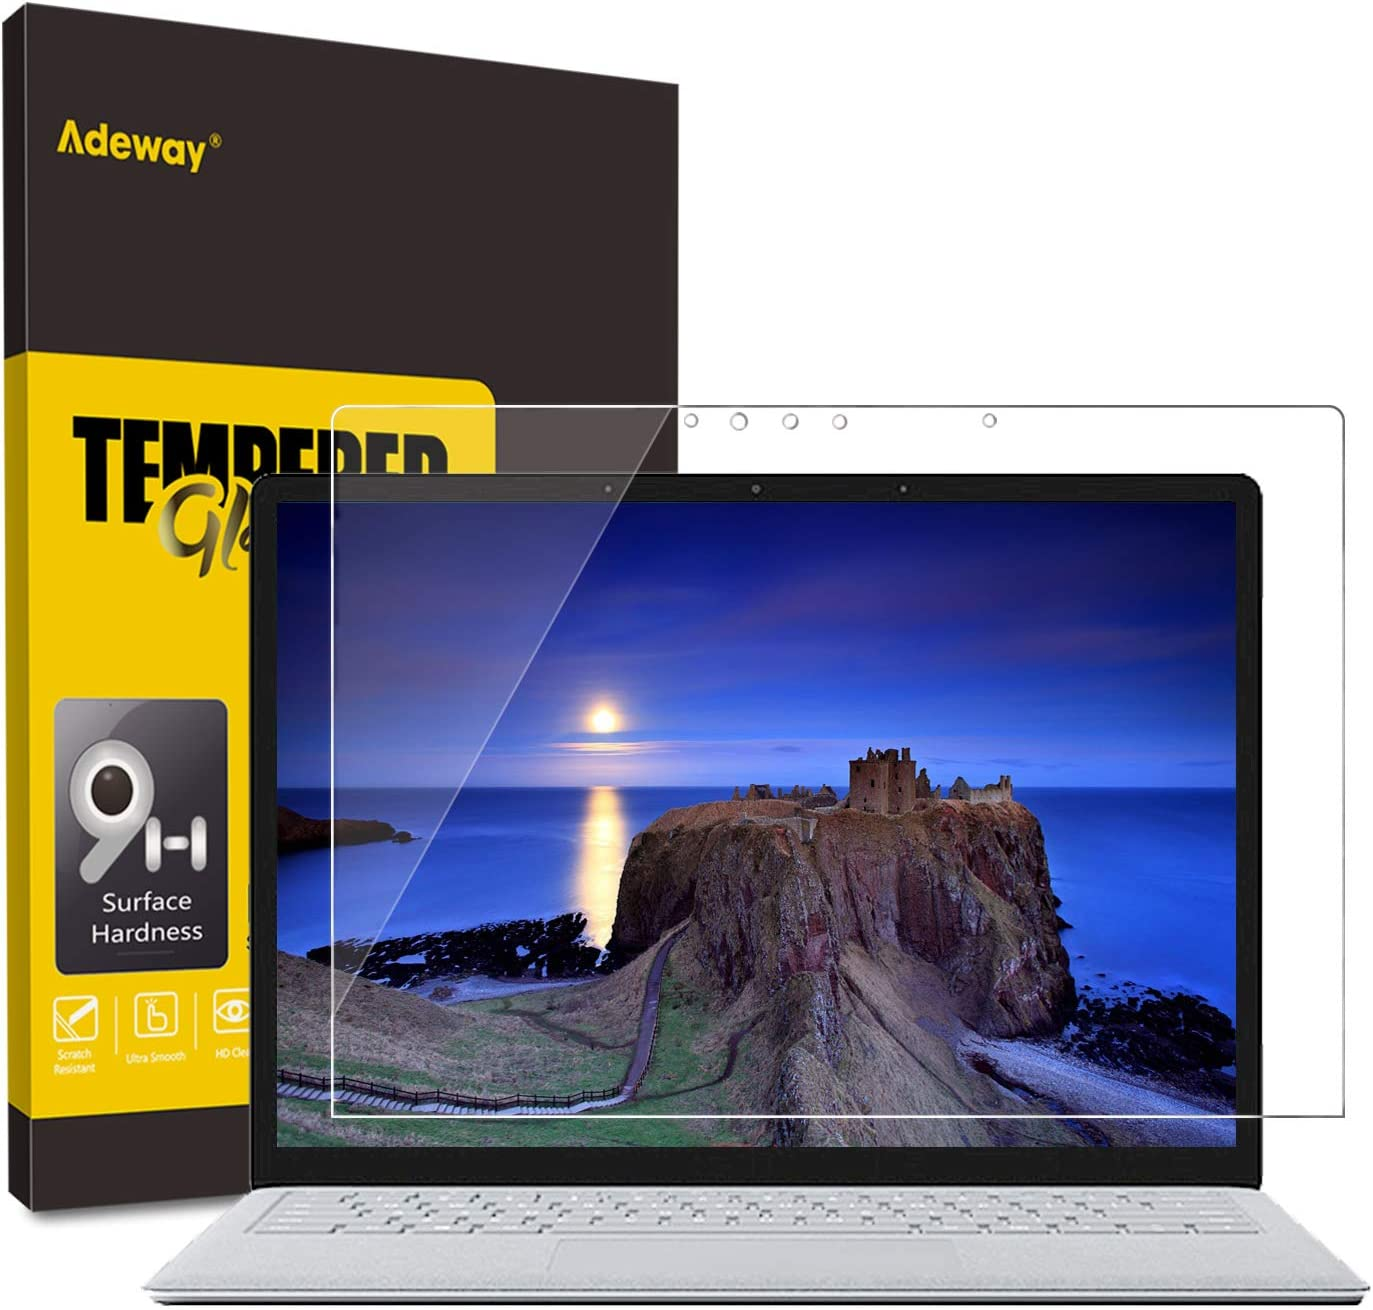 Adeway Tempered Screen Protector for Microsoft Surface Laptop 3/2 (15 inch), 9H Hardness, HD Clear, Ultra Sensitivity,During Installation Screen Protector